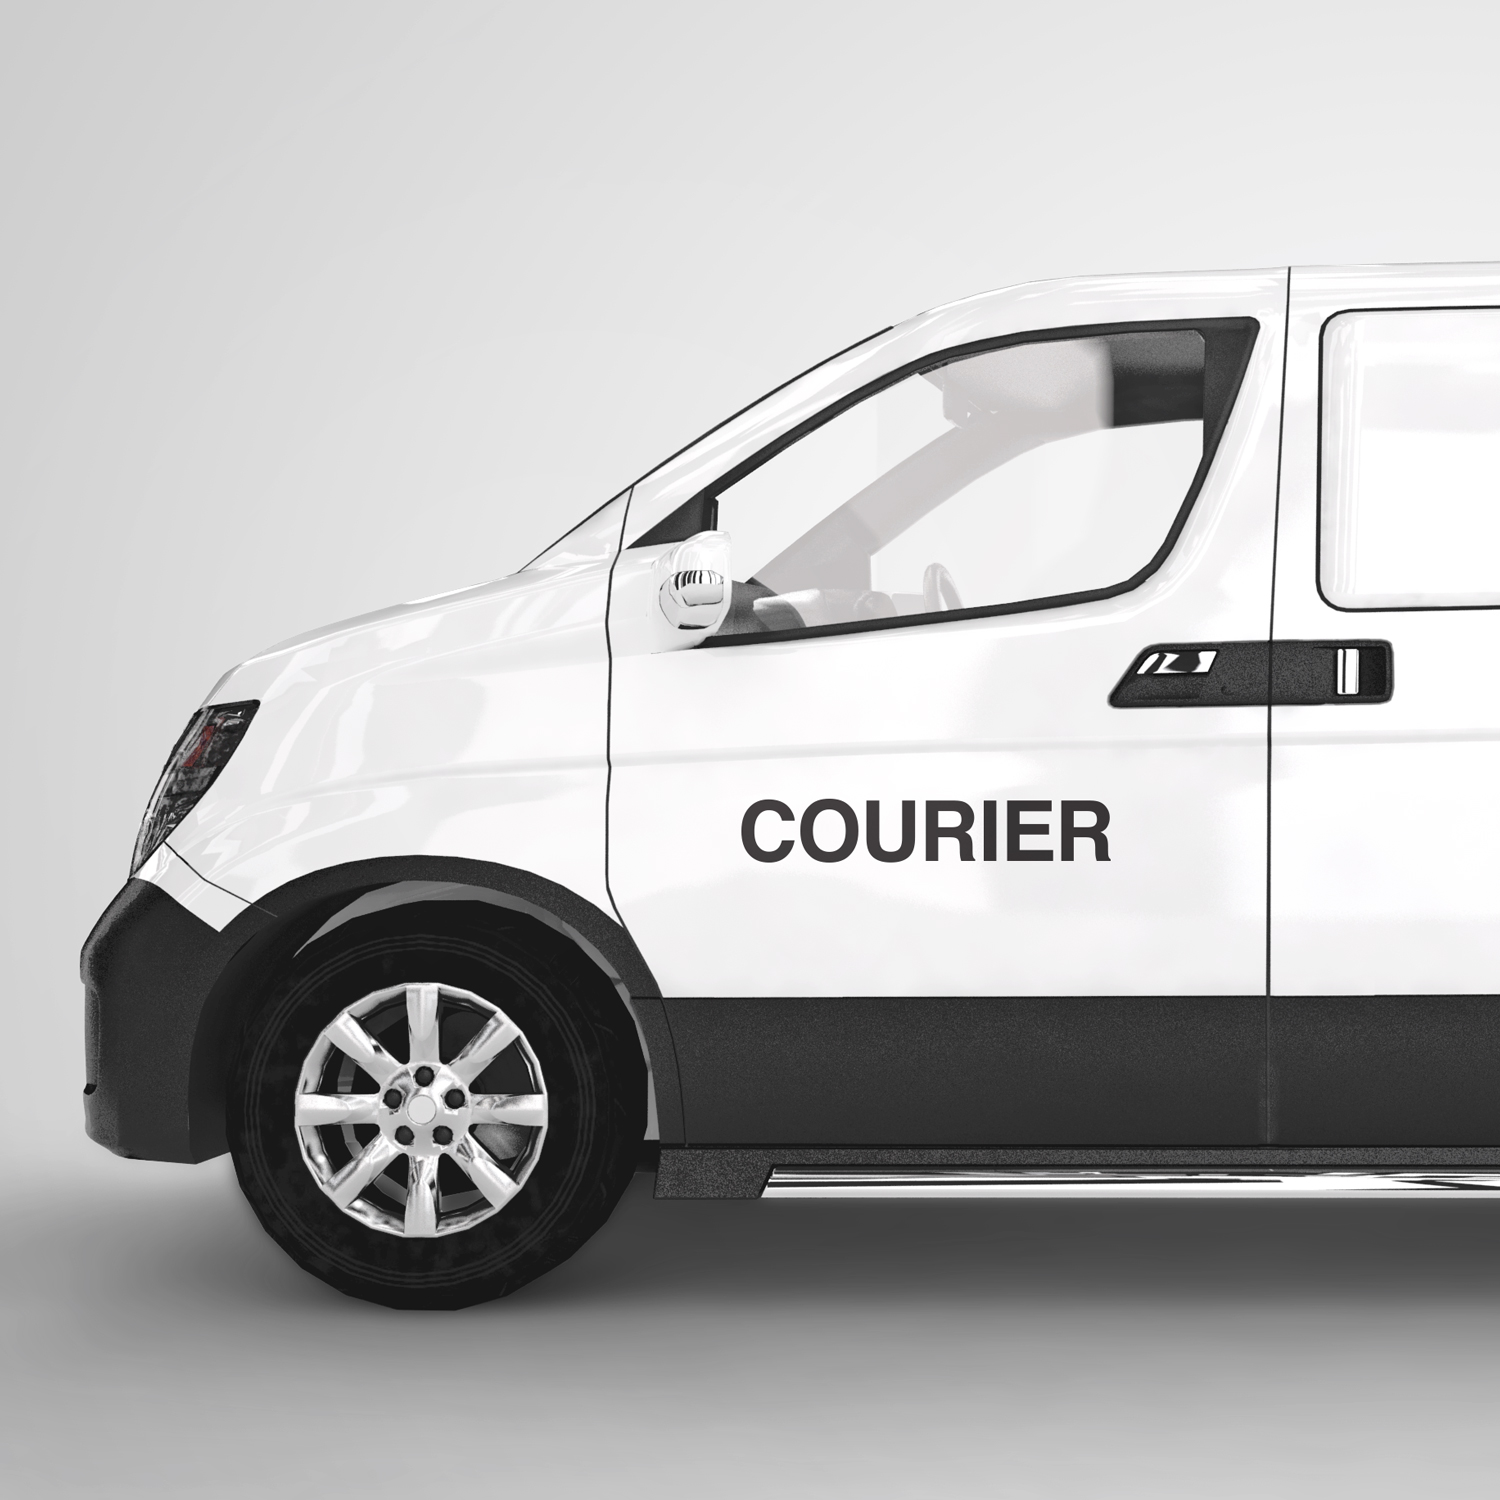 Courier business x2 car sticker decal